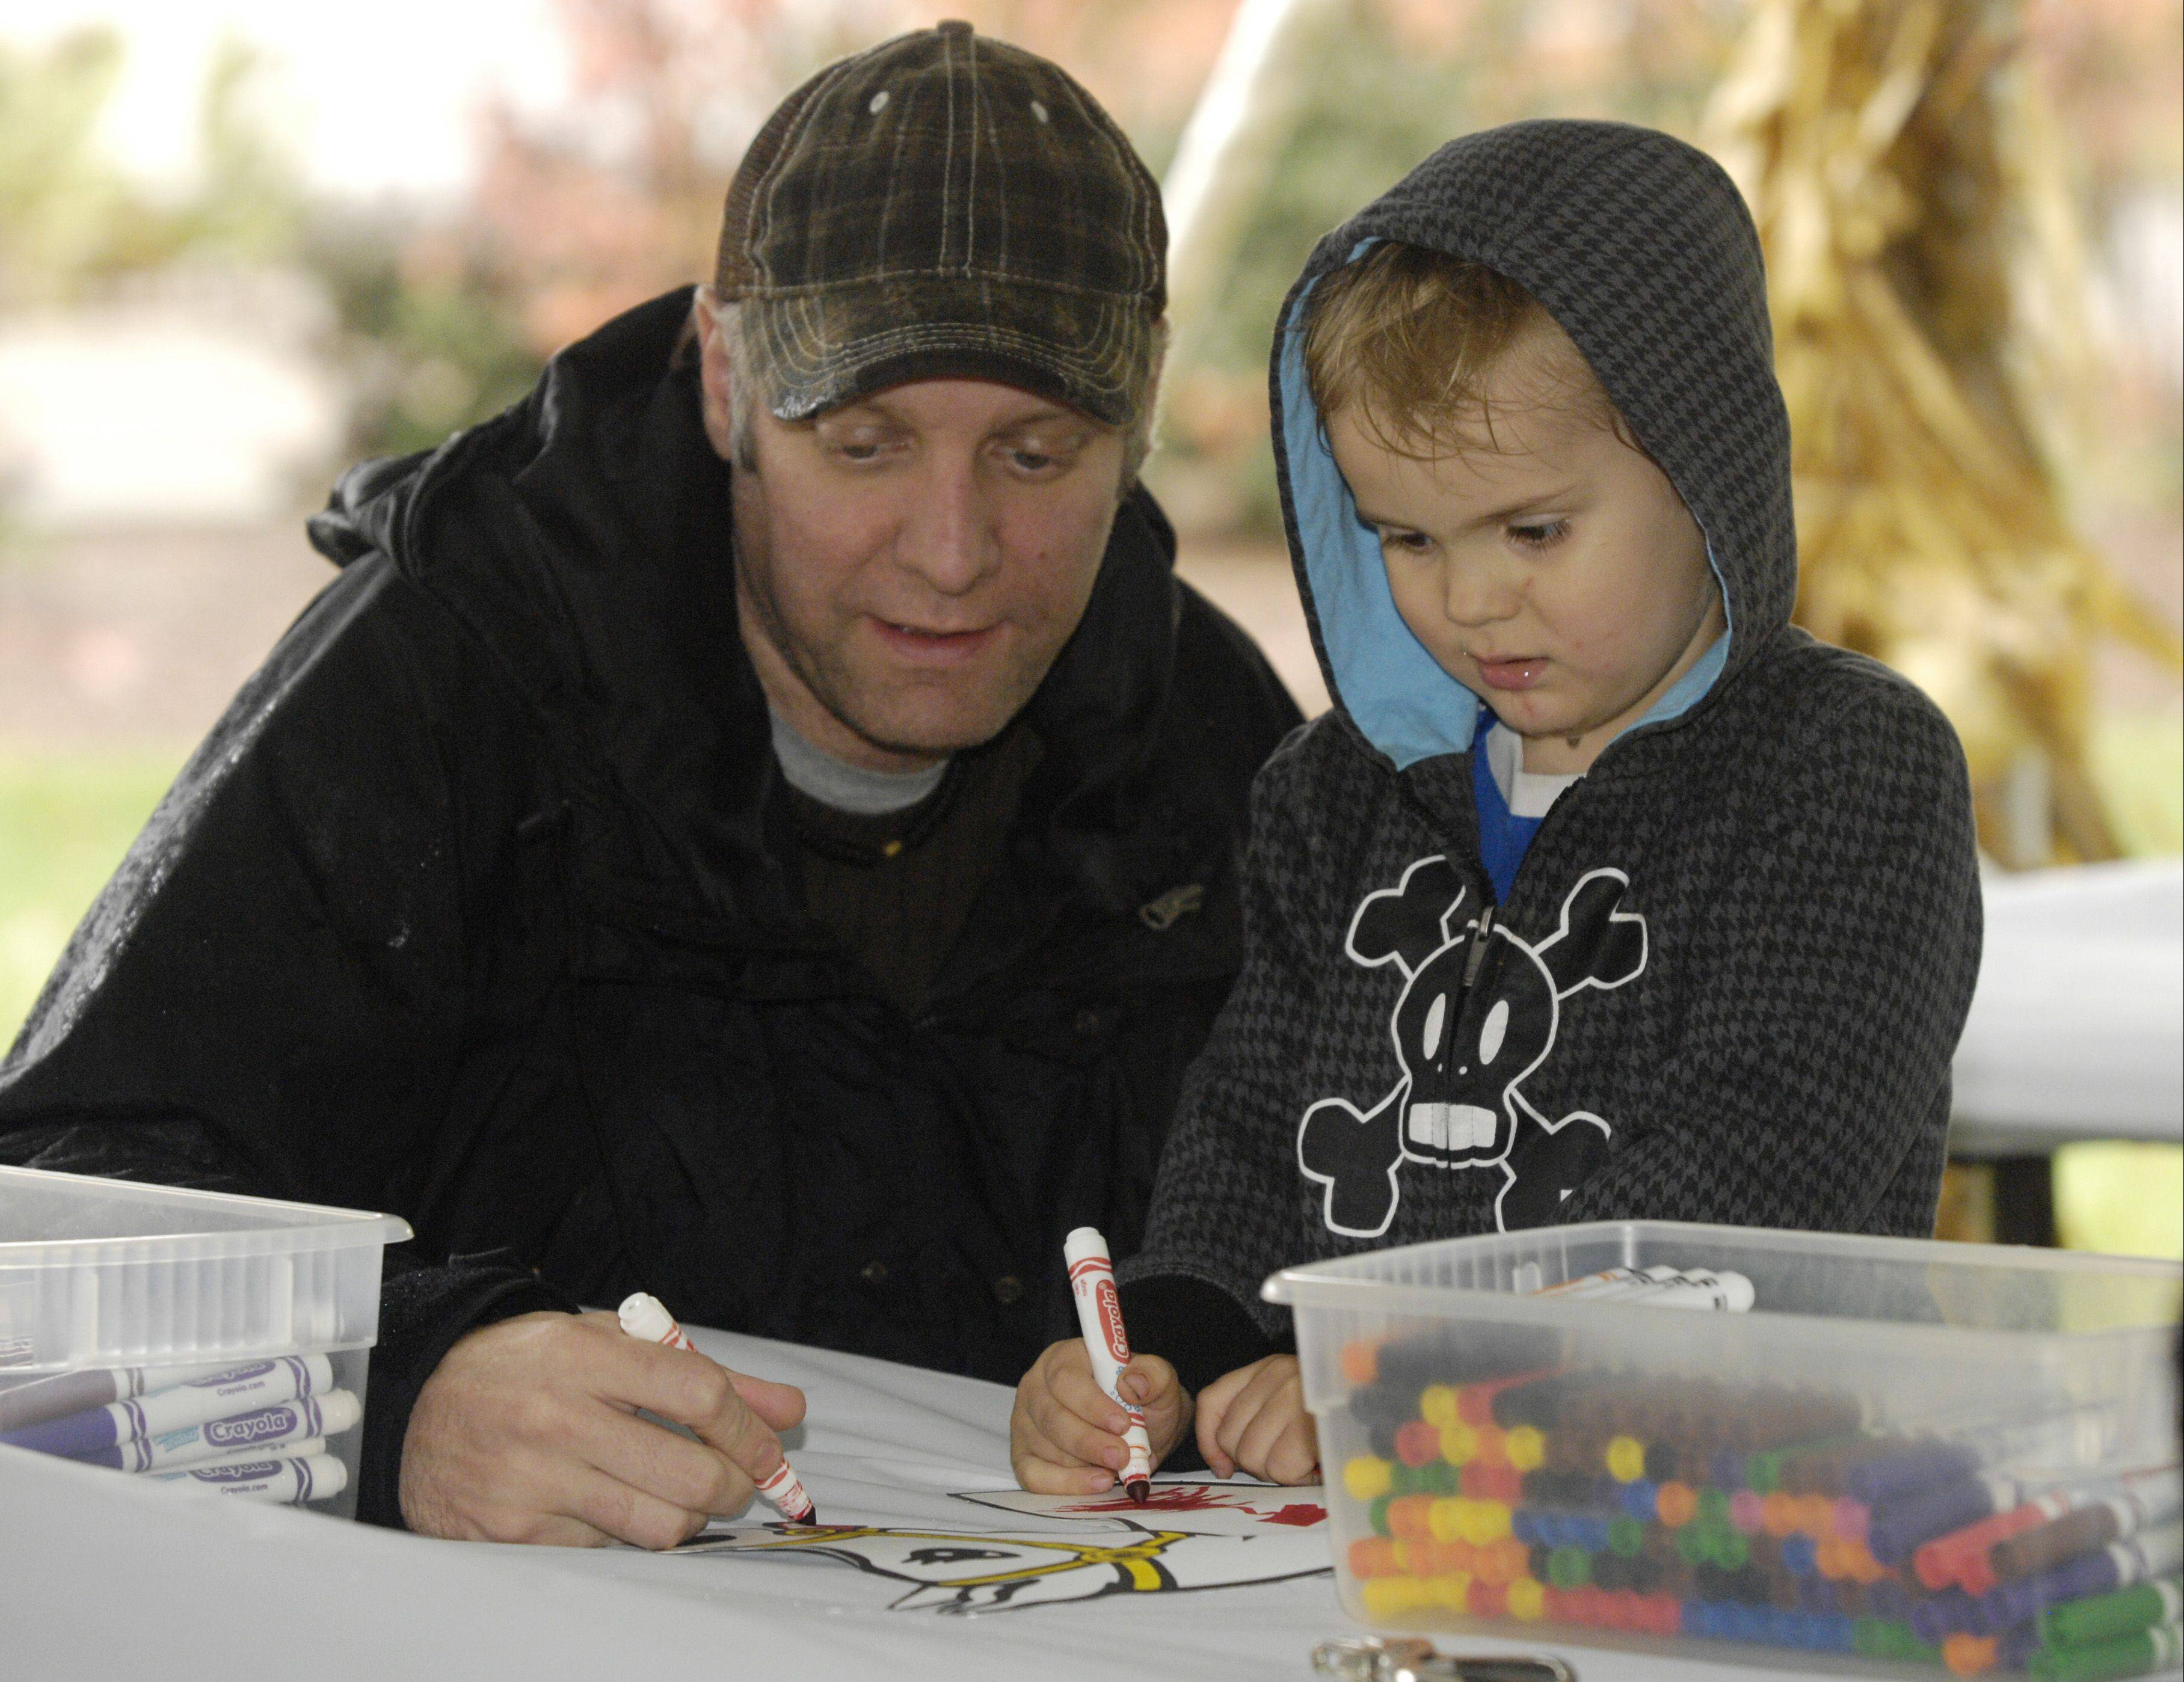 Eric Fey and his son Nolan, 3, make a hobby horse while visiting the Forest Preserve District of DuPage County's annual Danada Fall Festival Sunday in Wheaton.